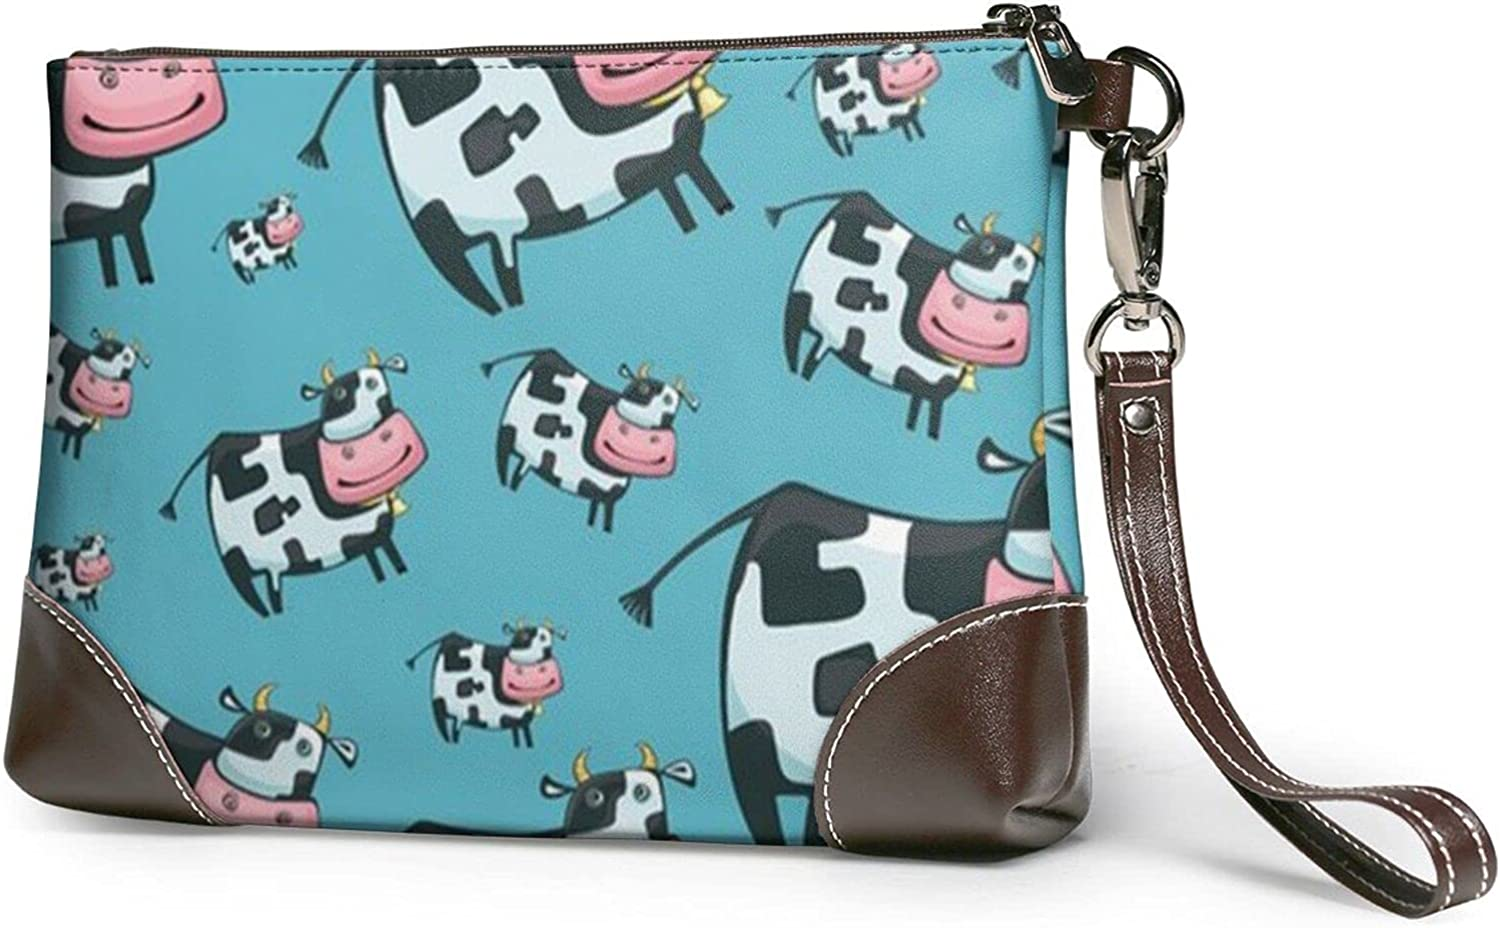 Wallet Cute Otters Printed Ladies Wristband Handbag Leather Clutch 8 X 5.5 X 1.5 Inches